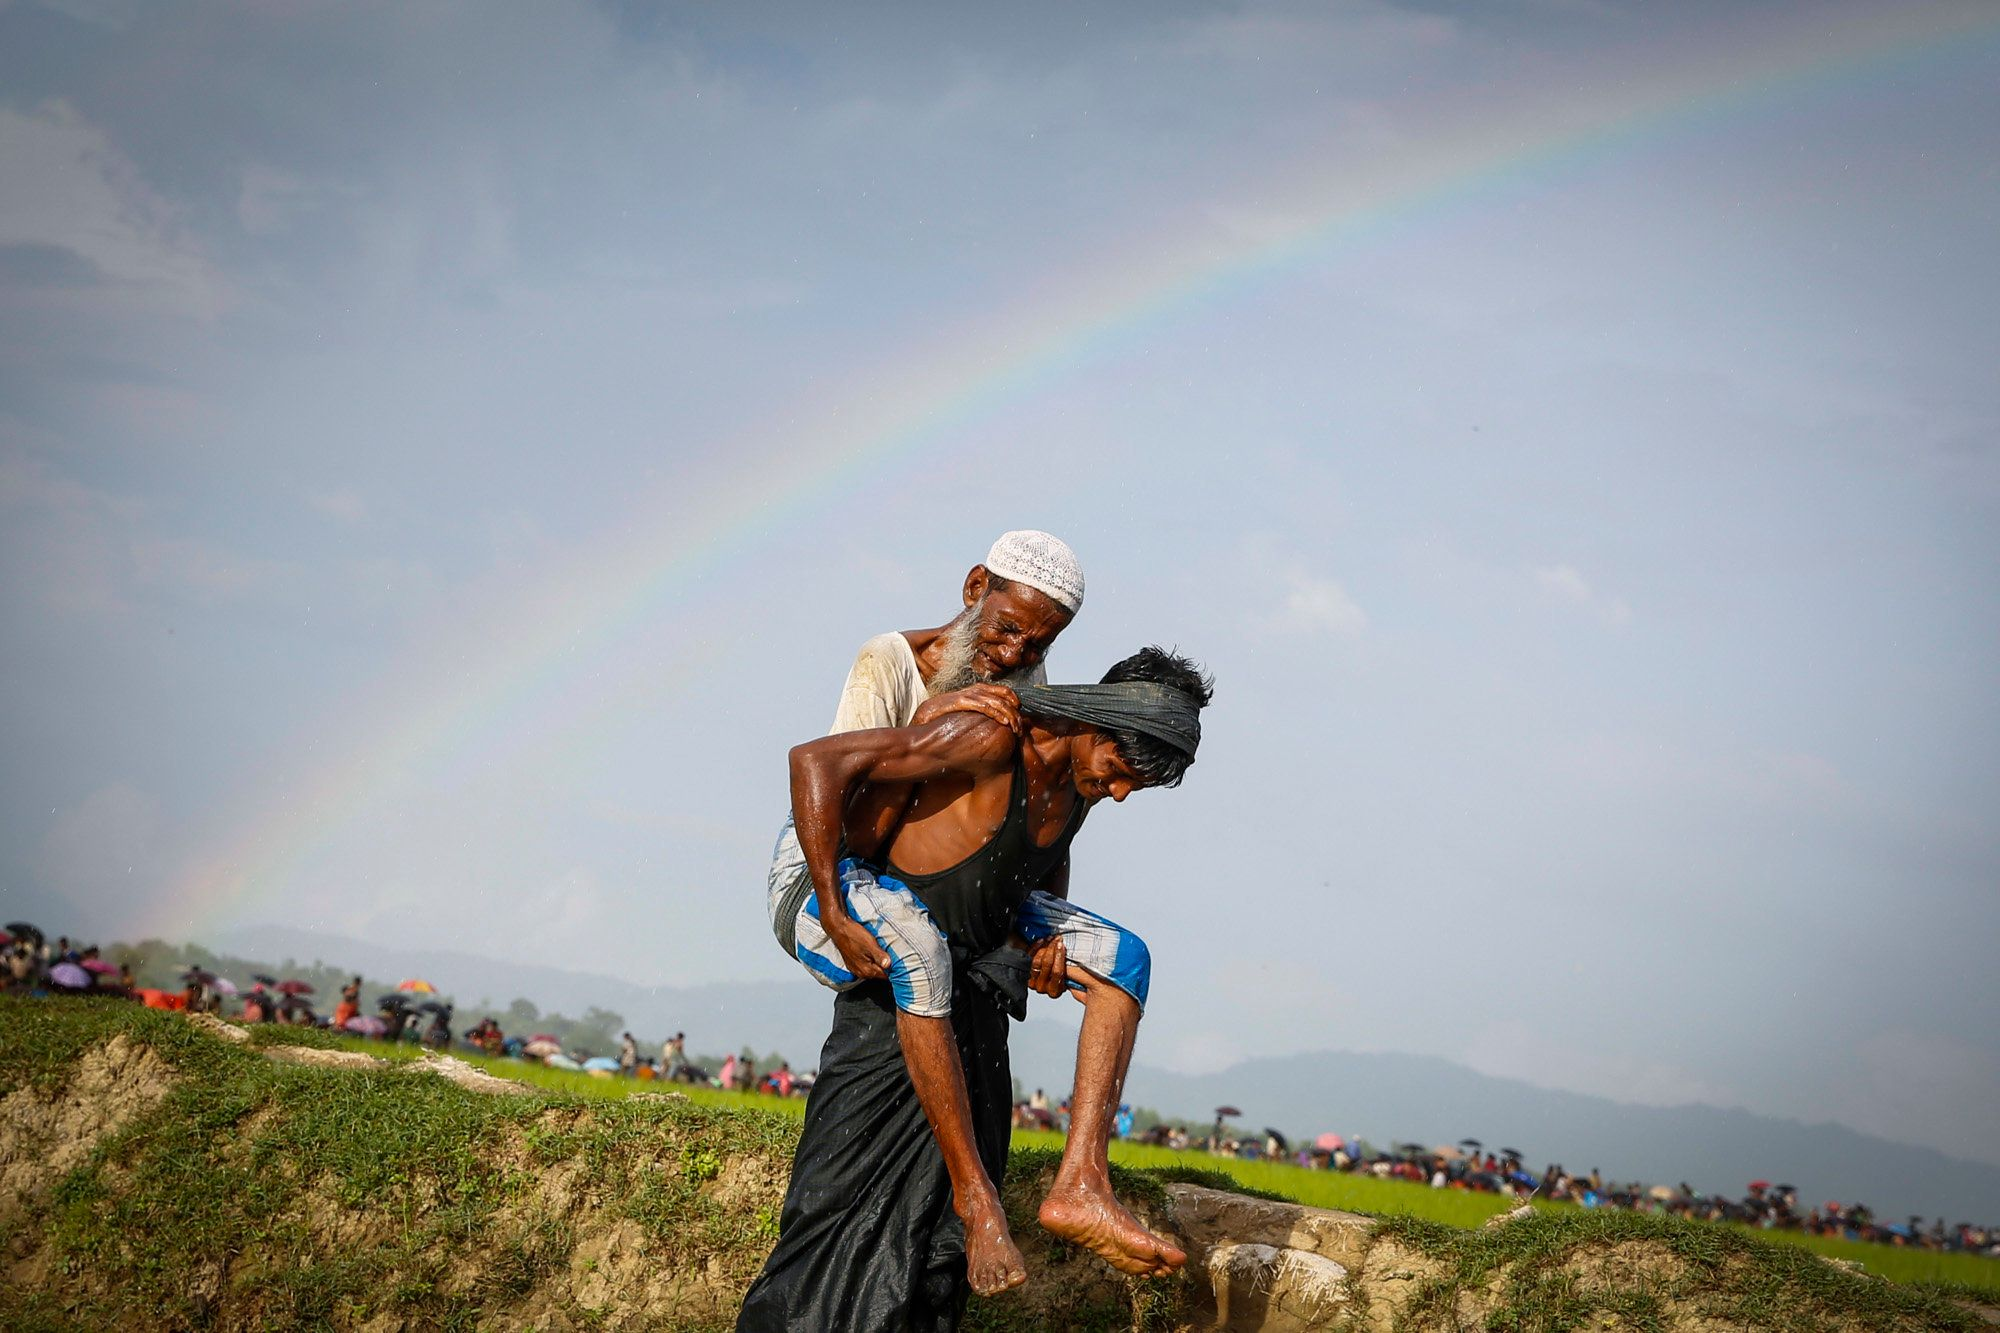 No One Knows How Many Rohingya Have Died After Fleeing